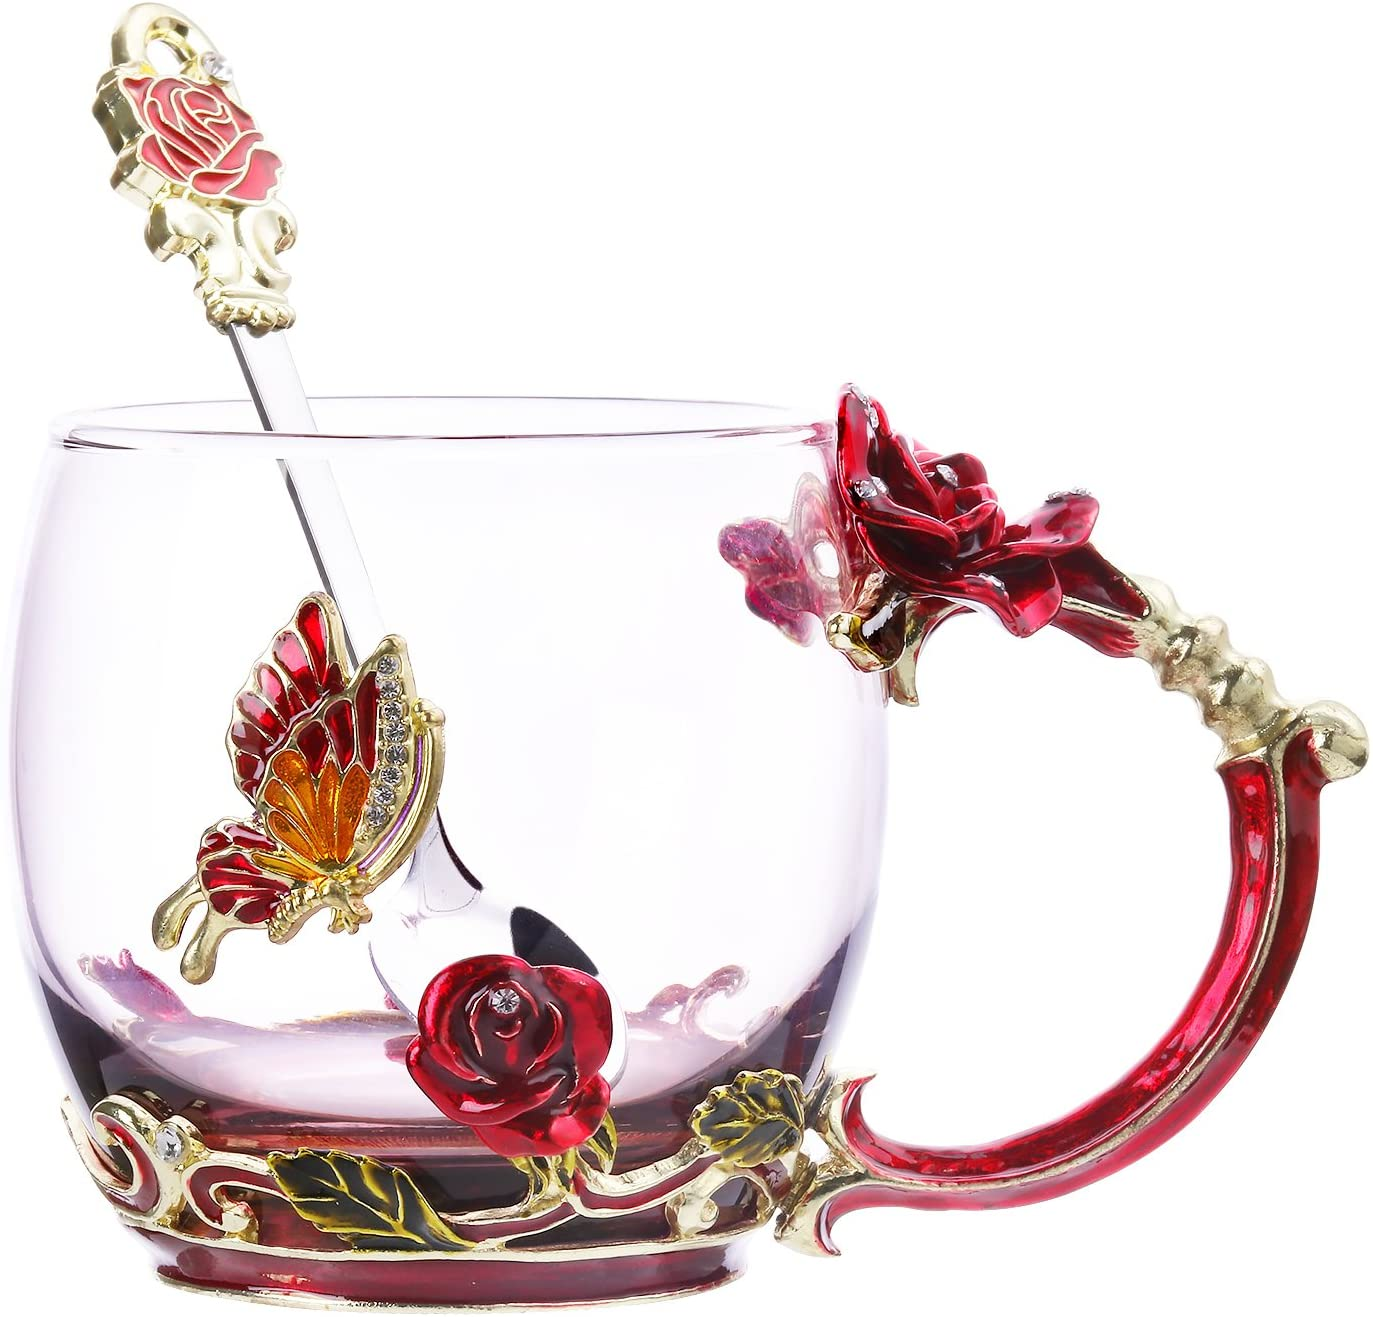 decorative glass tea cup, best gifts for mom